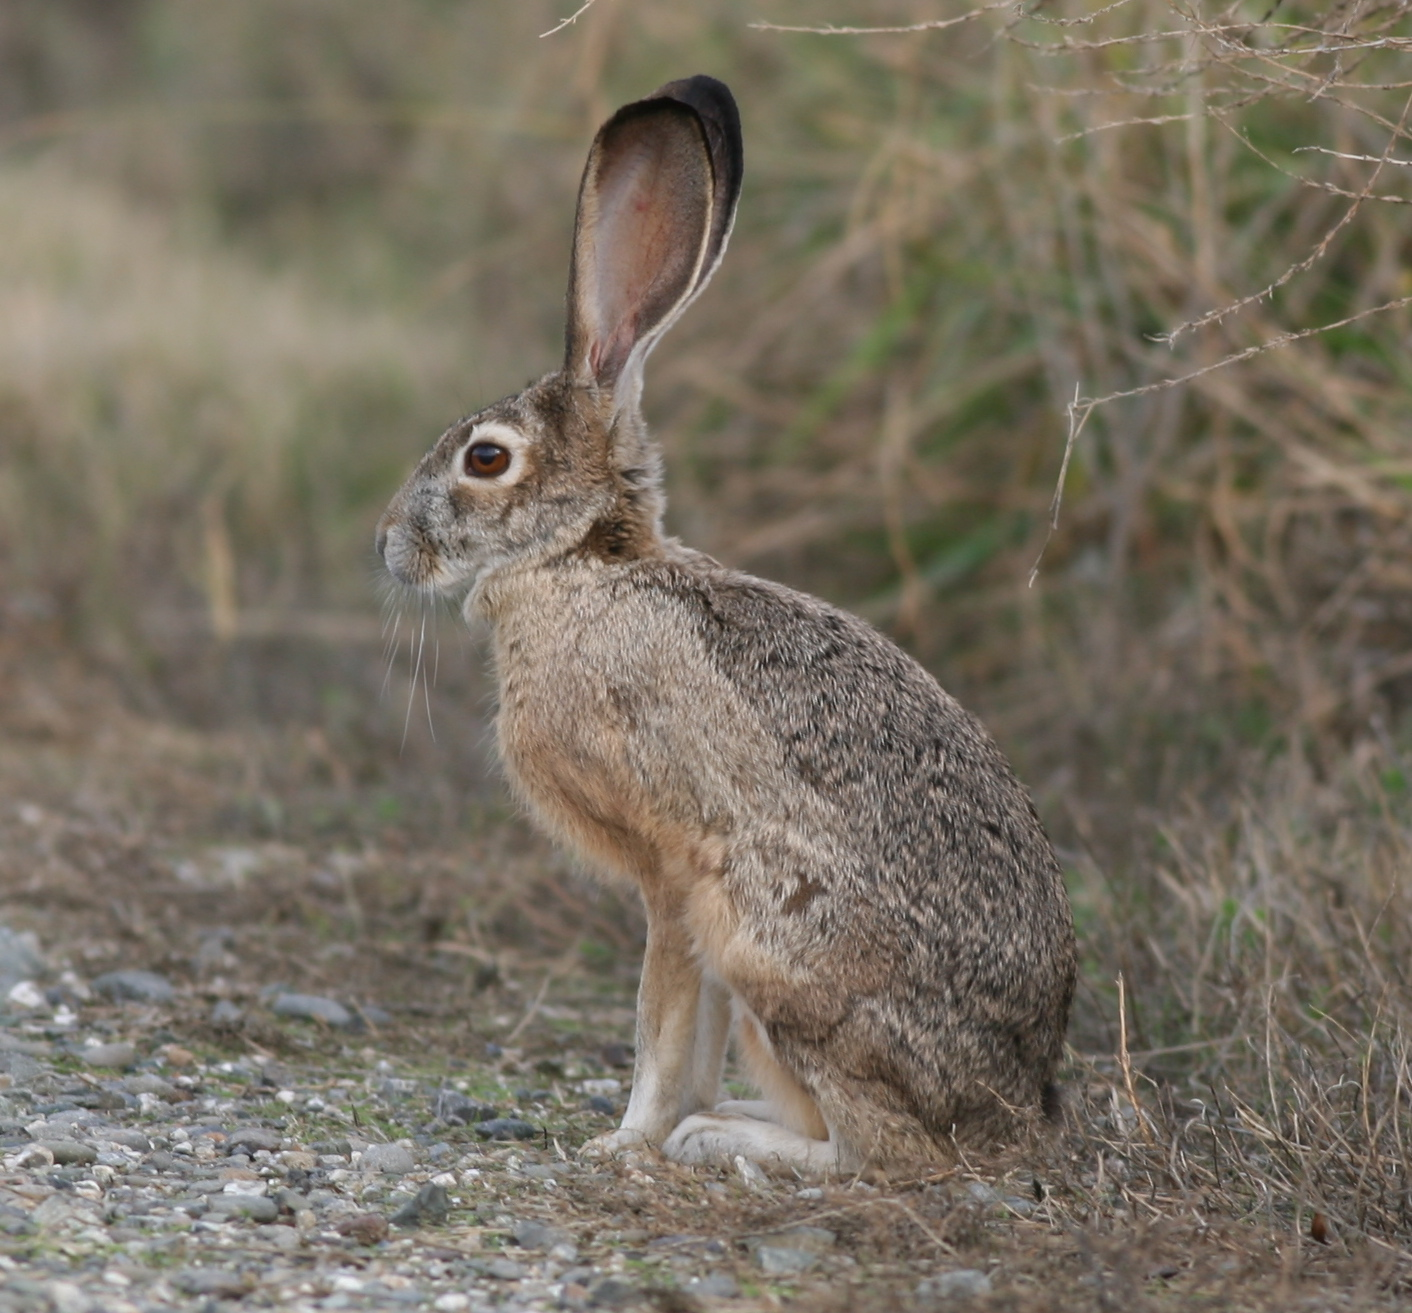 A black-tailed jackrabbit we saw at the Sacramento National Wildlife Refuge during our Pacific Flyway birding trip. Despite its name, this is a hare, not a rabbit.